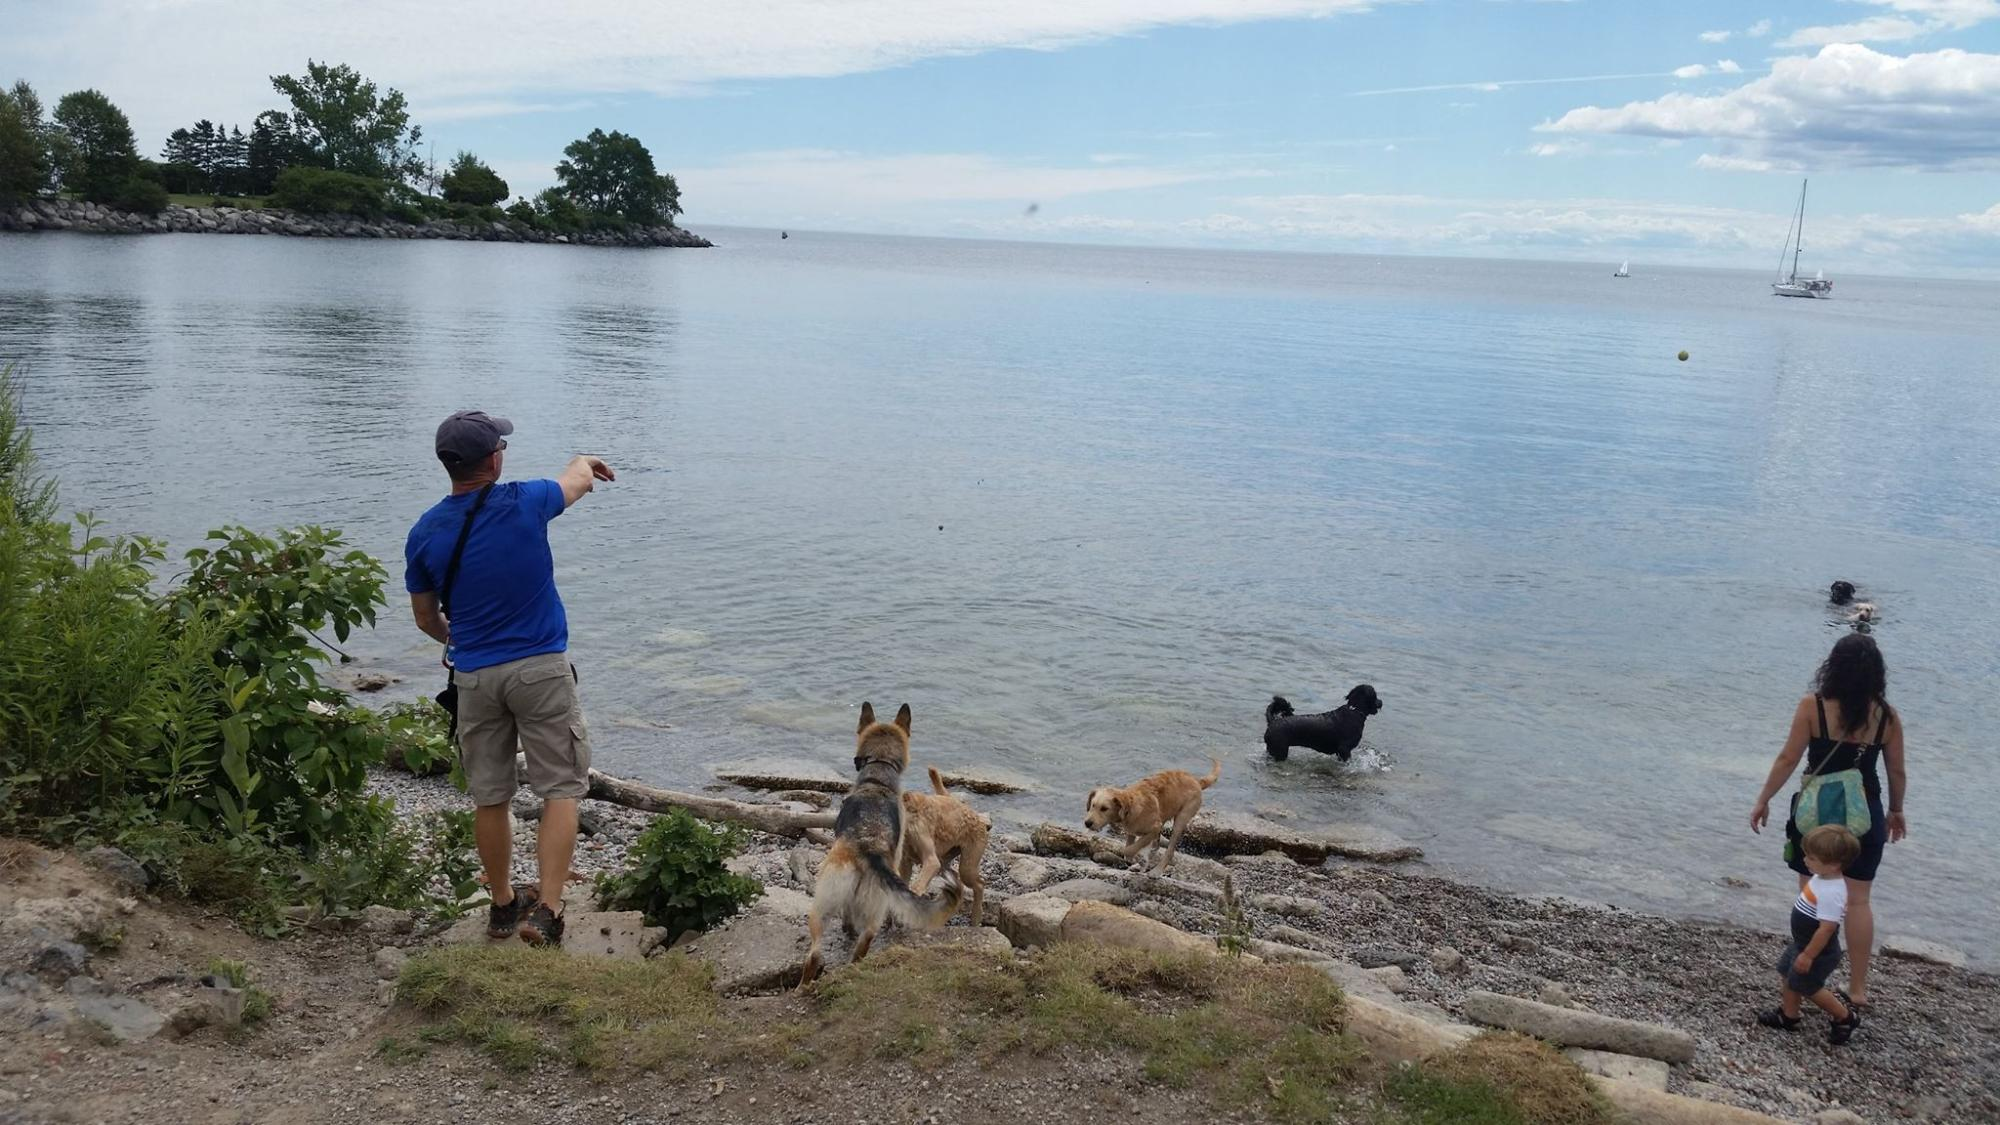 002a-Dog-Walker-Dan-With-Dogs-Off-Leash-Swimming.jpg